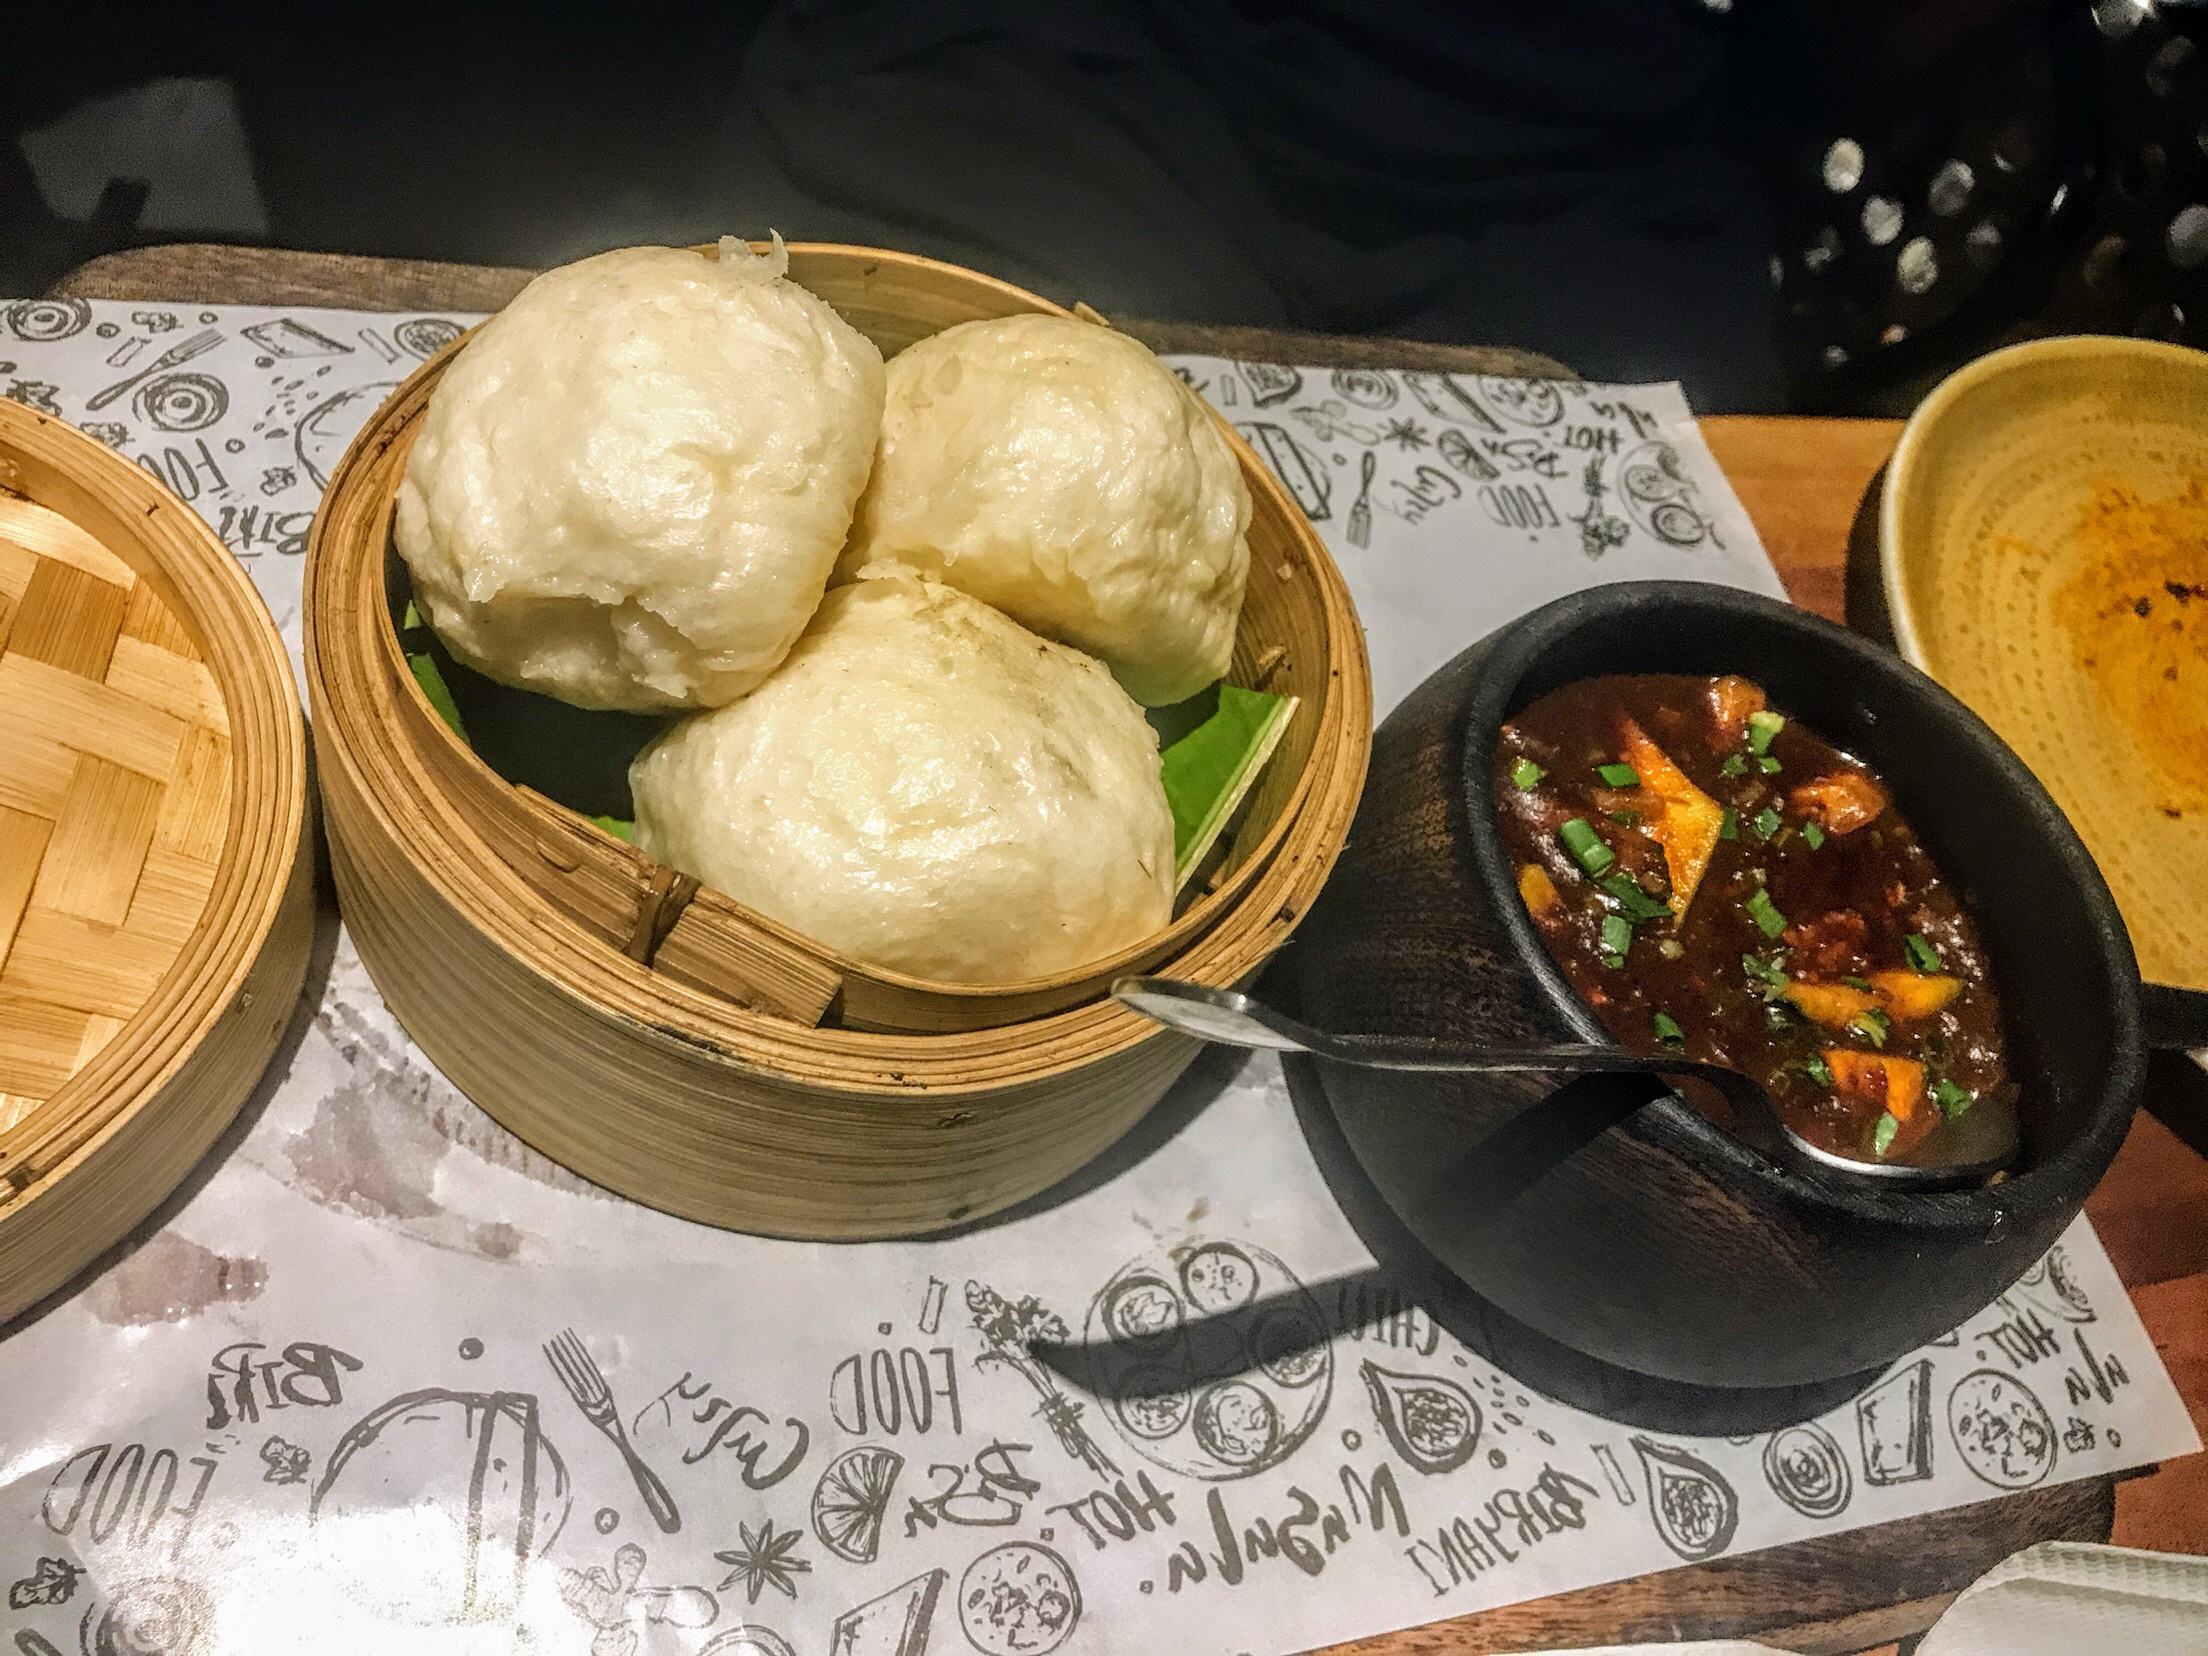 Bao buns in Bangalore